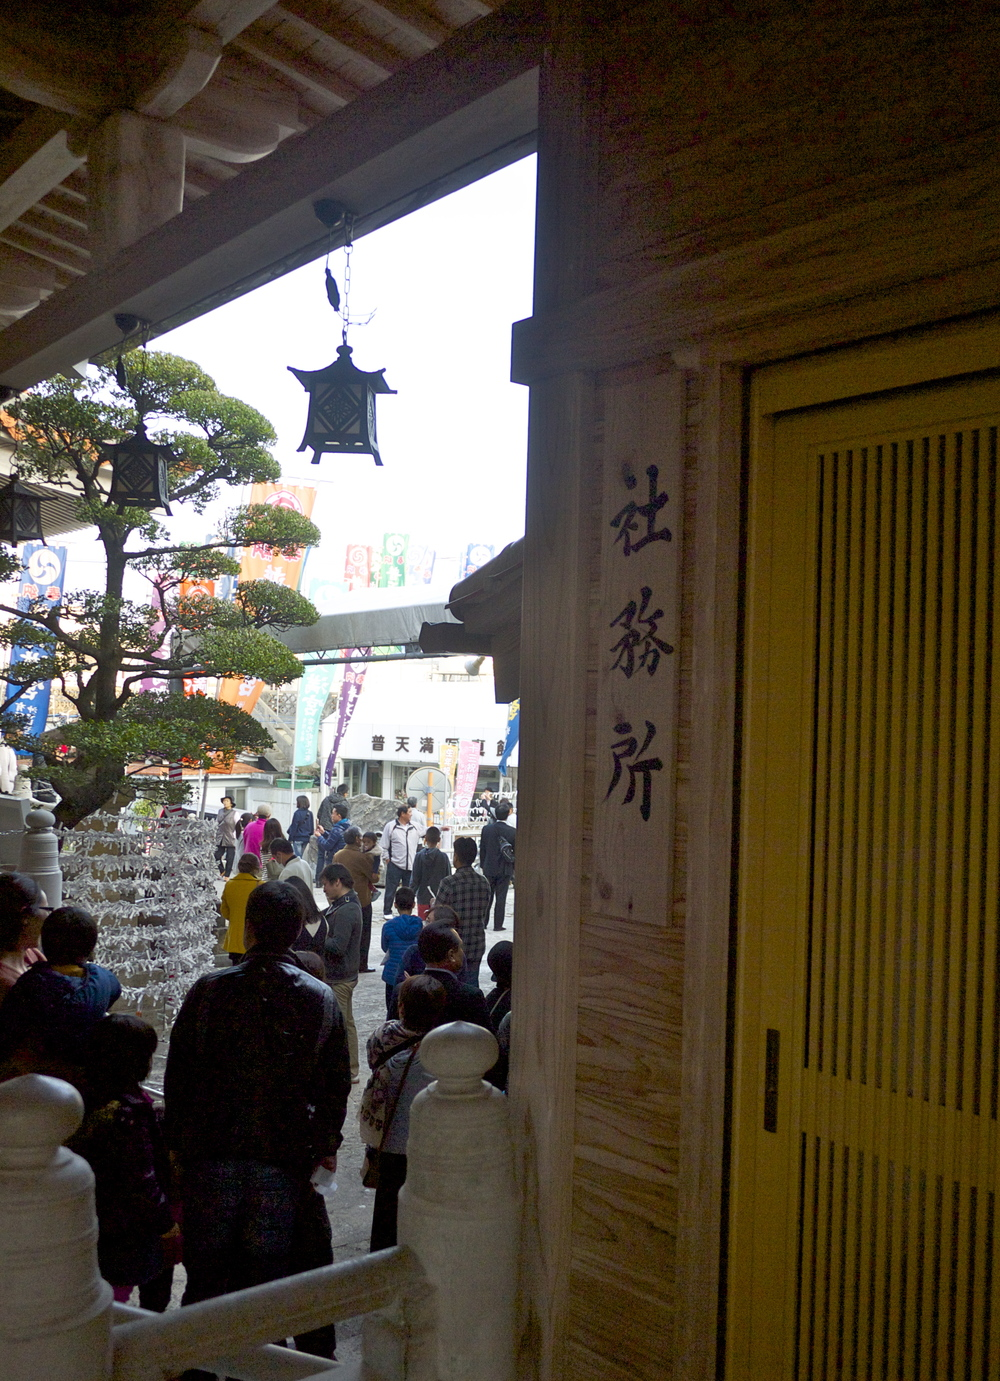 Wooden traditional Japanese architecture and hanging lanterns at the shrine